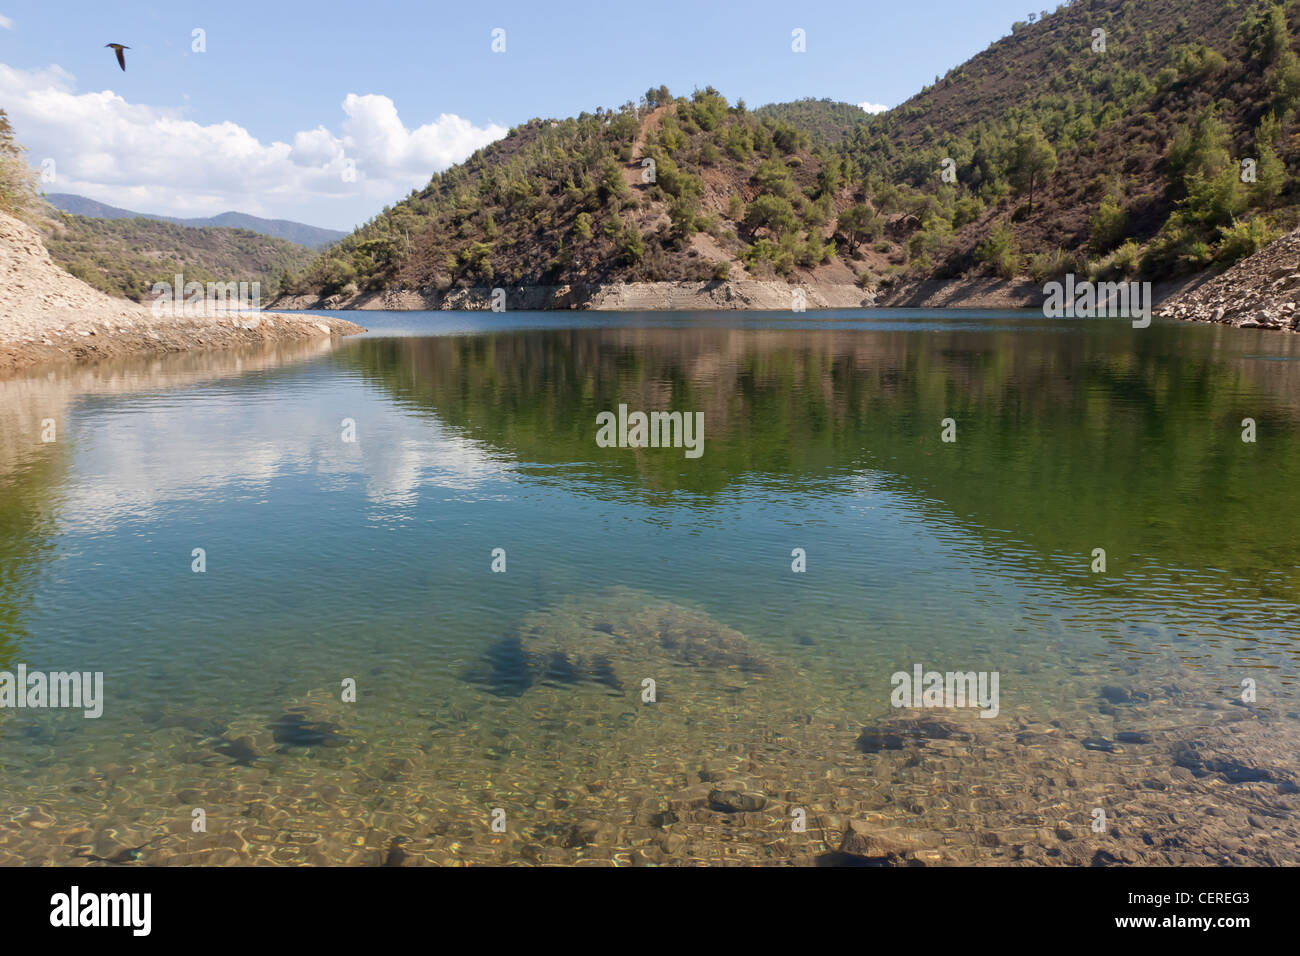 Argaka dam, Paphos area, Cyprus Stock Photo